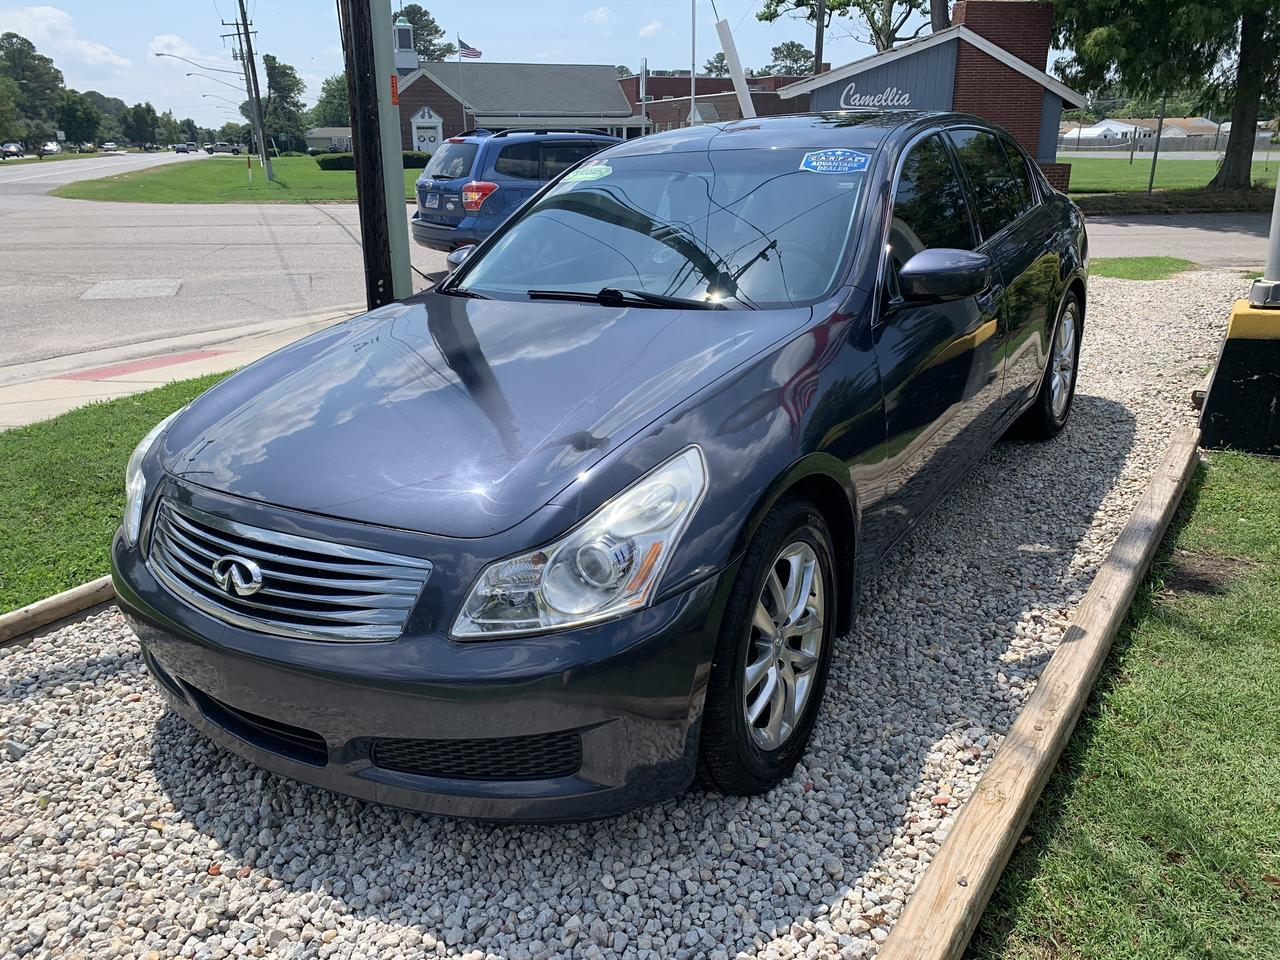 2009 INFINITI G37 JOURNEY, WARRANTY, LEATHER, BACKUP CAM, HEATED SEATS, AUX/USB PORT, CLEAN CARFAX! Norfolk VA